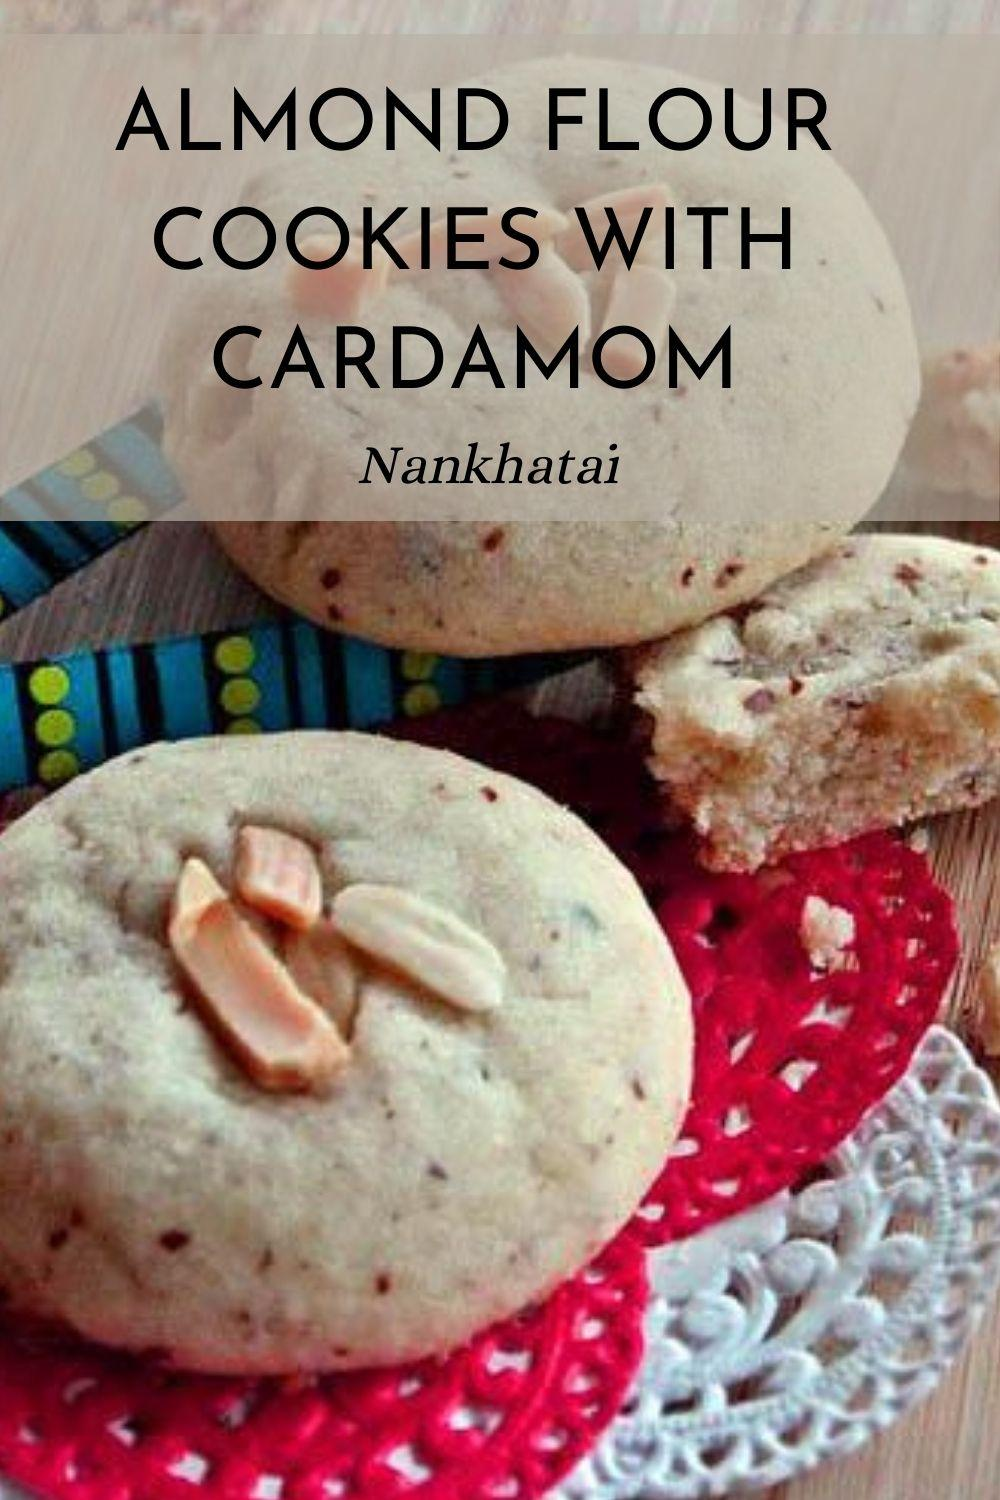 Almond Flour Cookies with Cardamom graphic